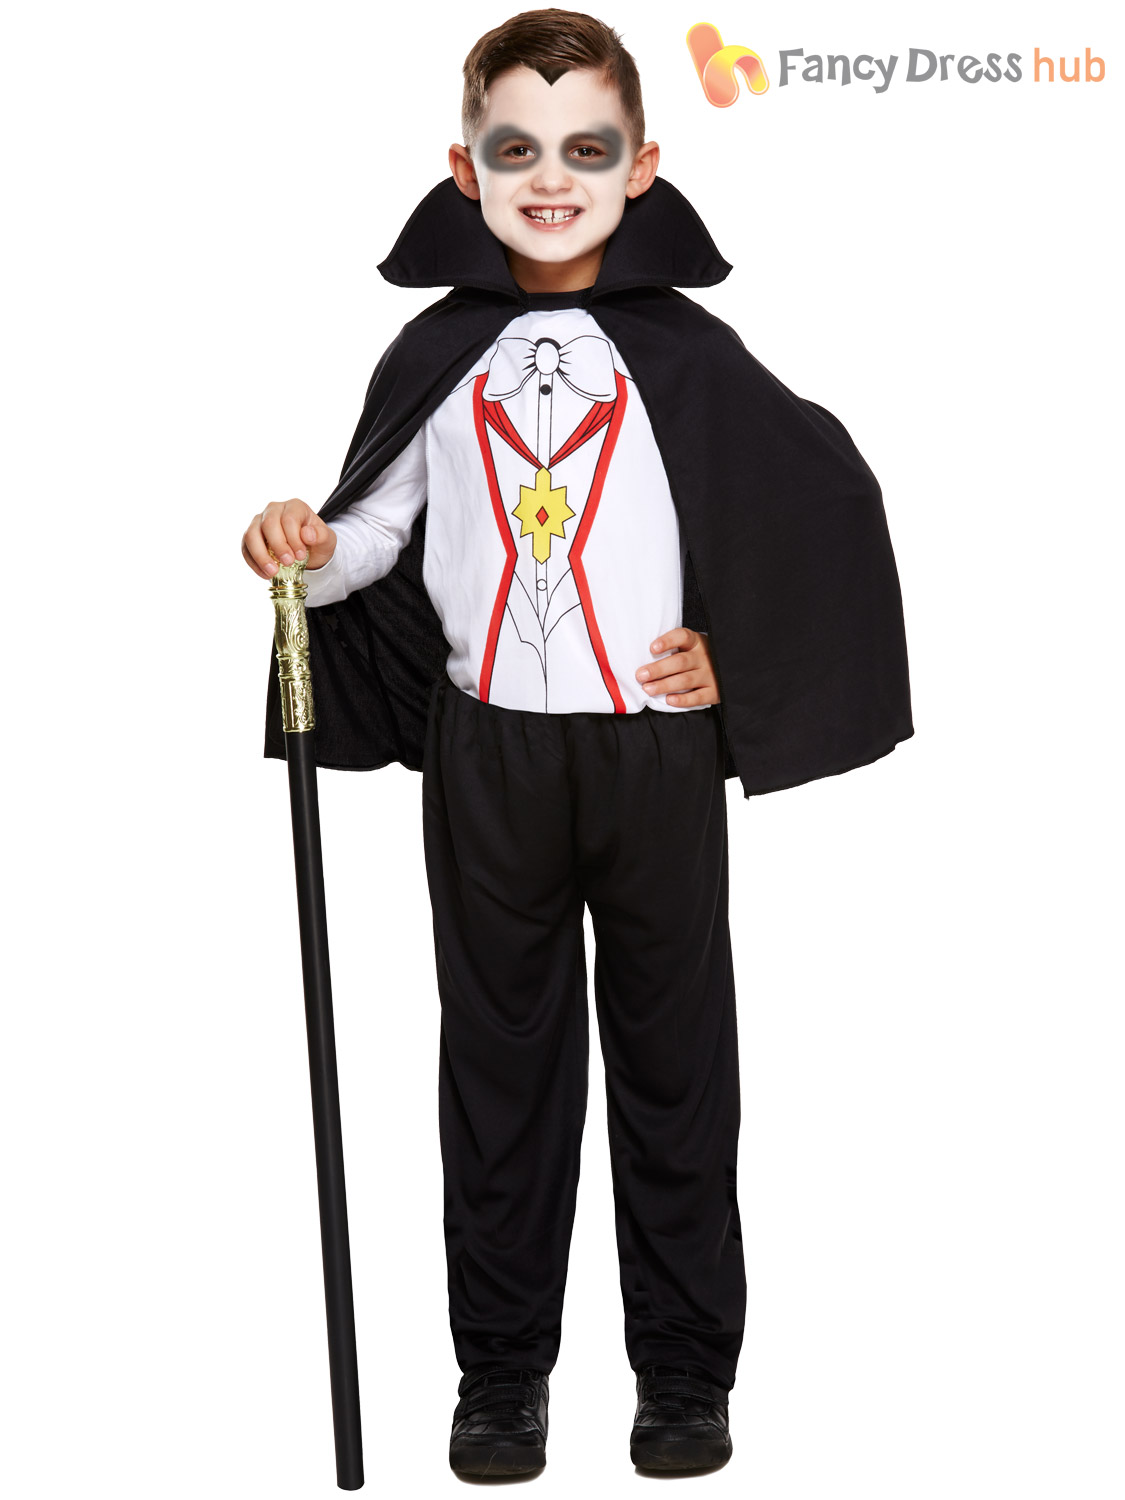 Halloween Vampire Costume Kids.Details About Boys Vampire Costume With Cape Halloween Fancy Dress Party Kids Outfit Dracula